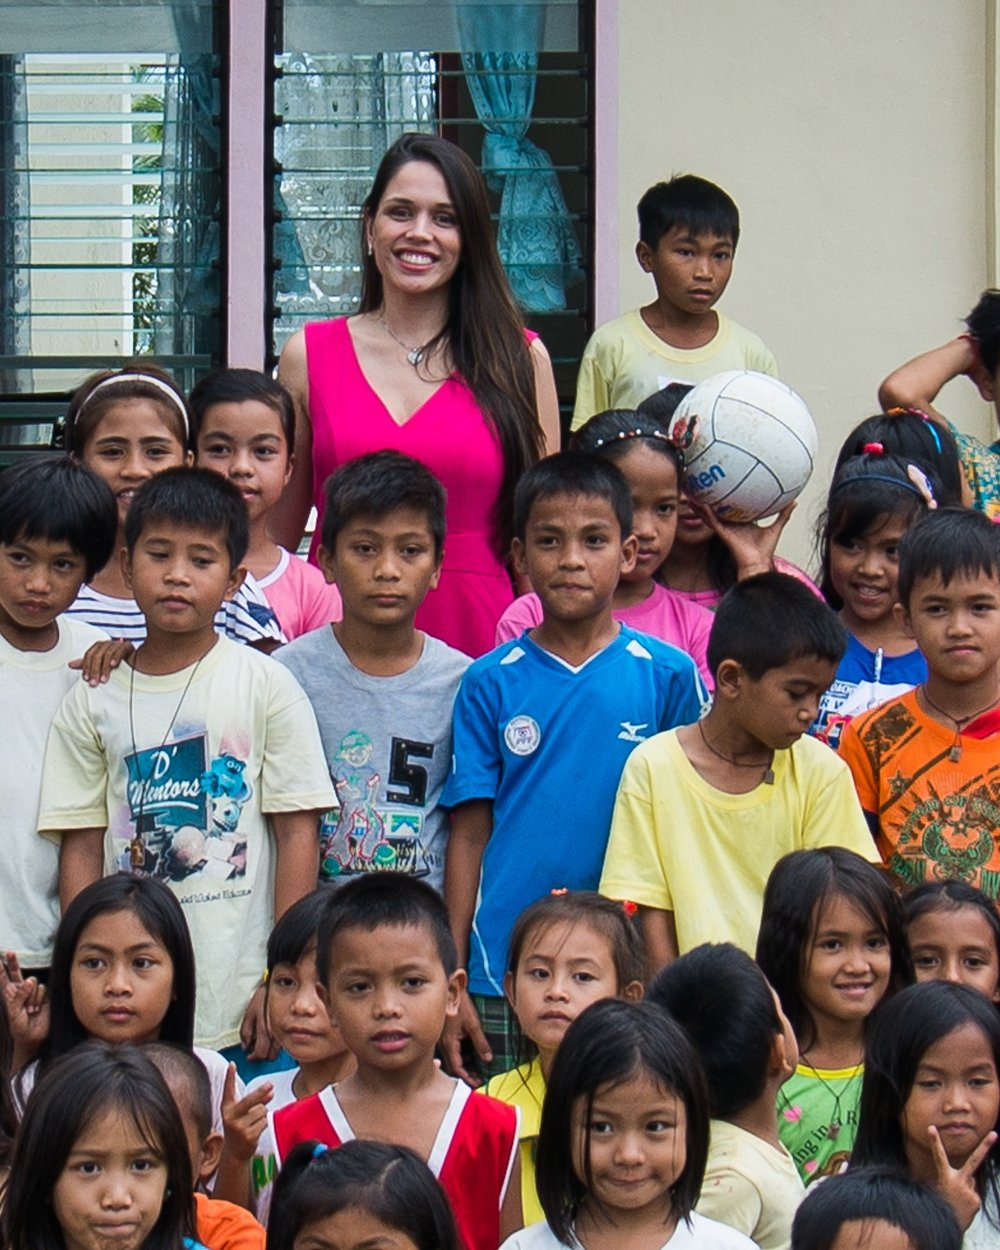 THE SHERYL LYNN FOUNDATION - With a main focus on children and education, The Sheryl Lynn Foundation has since it was was founded in 2007 actively helped and supported thousands of Filipino children in poverty. Read more.